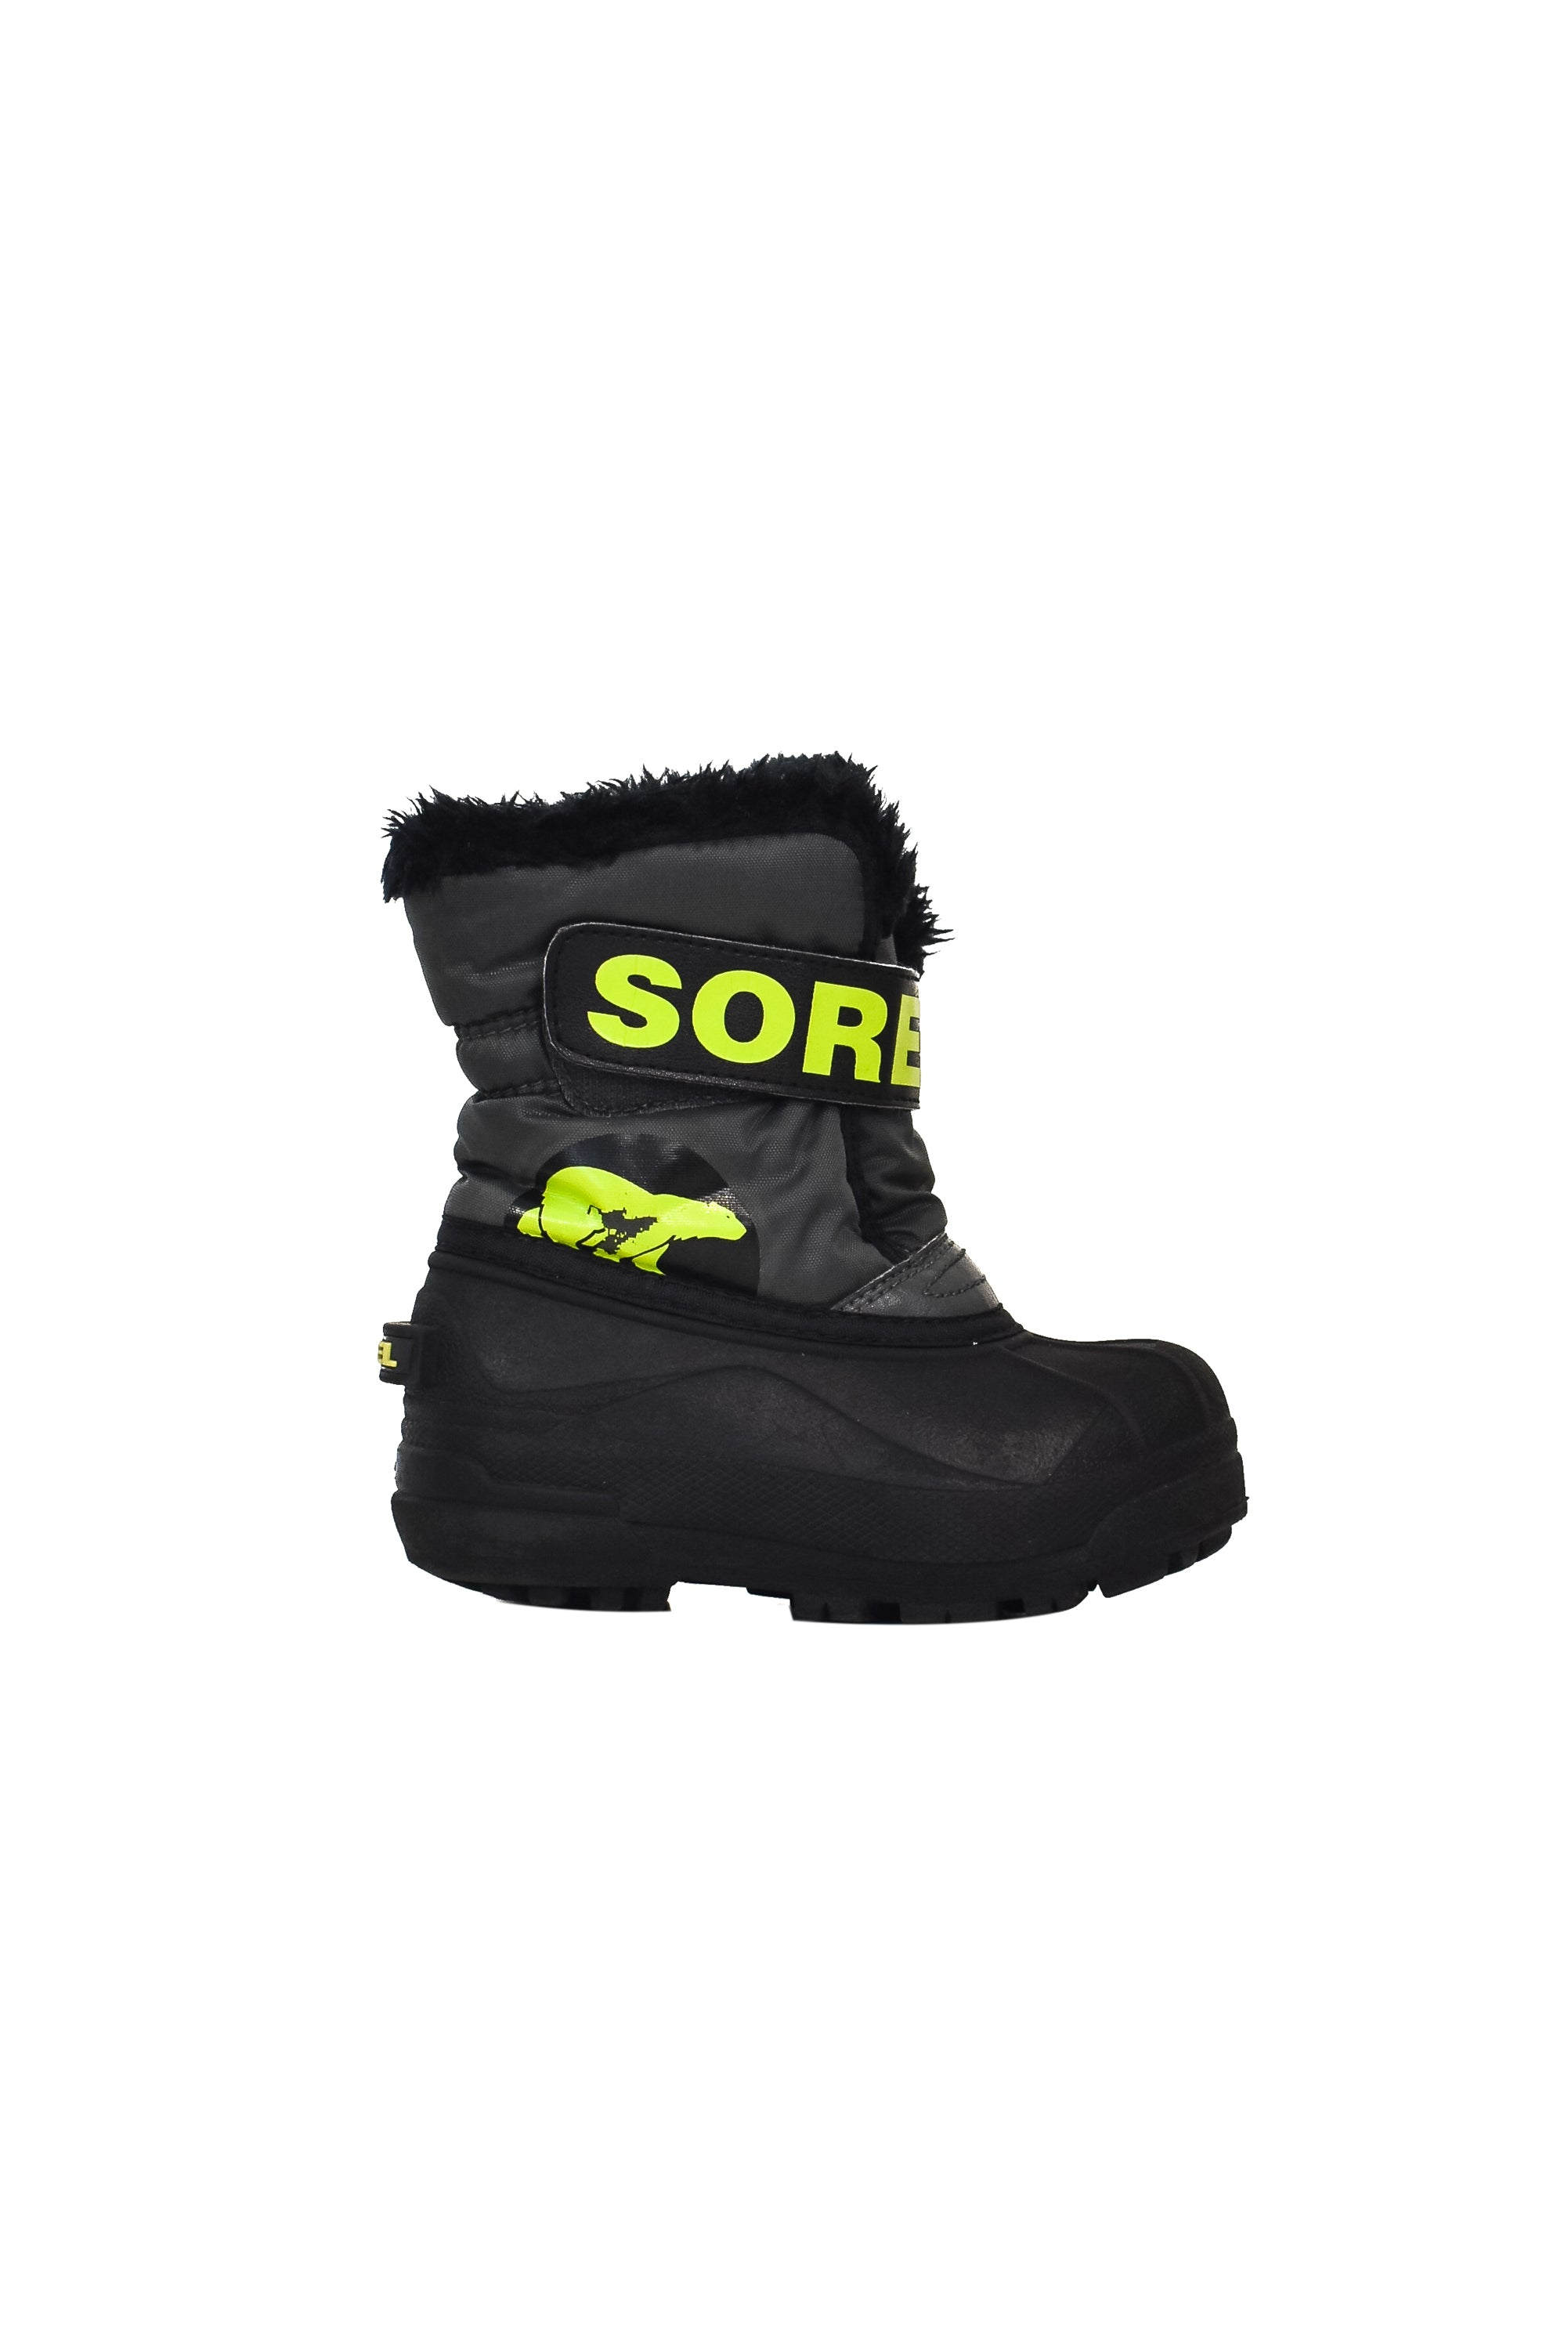 10034981 Sorel Kids~Boots 4T (EU 26) at Retykle